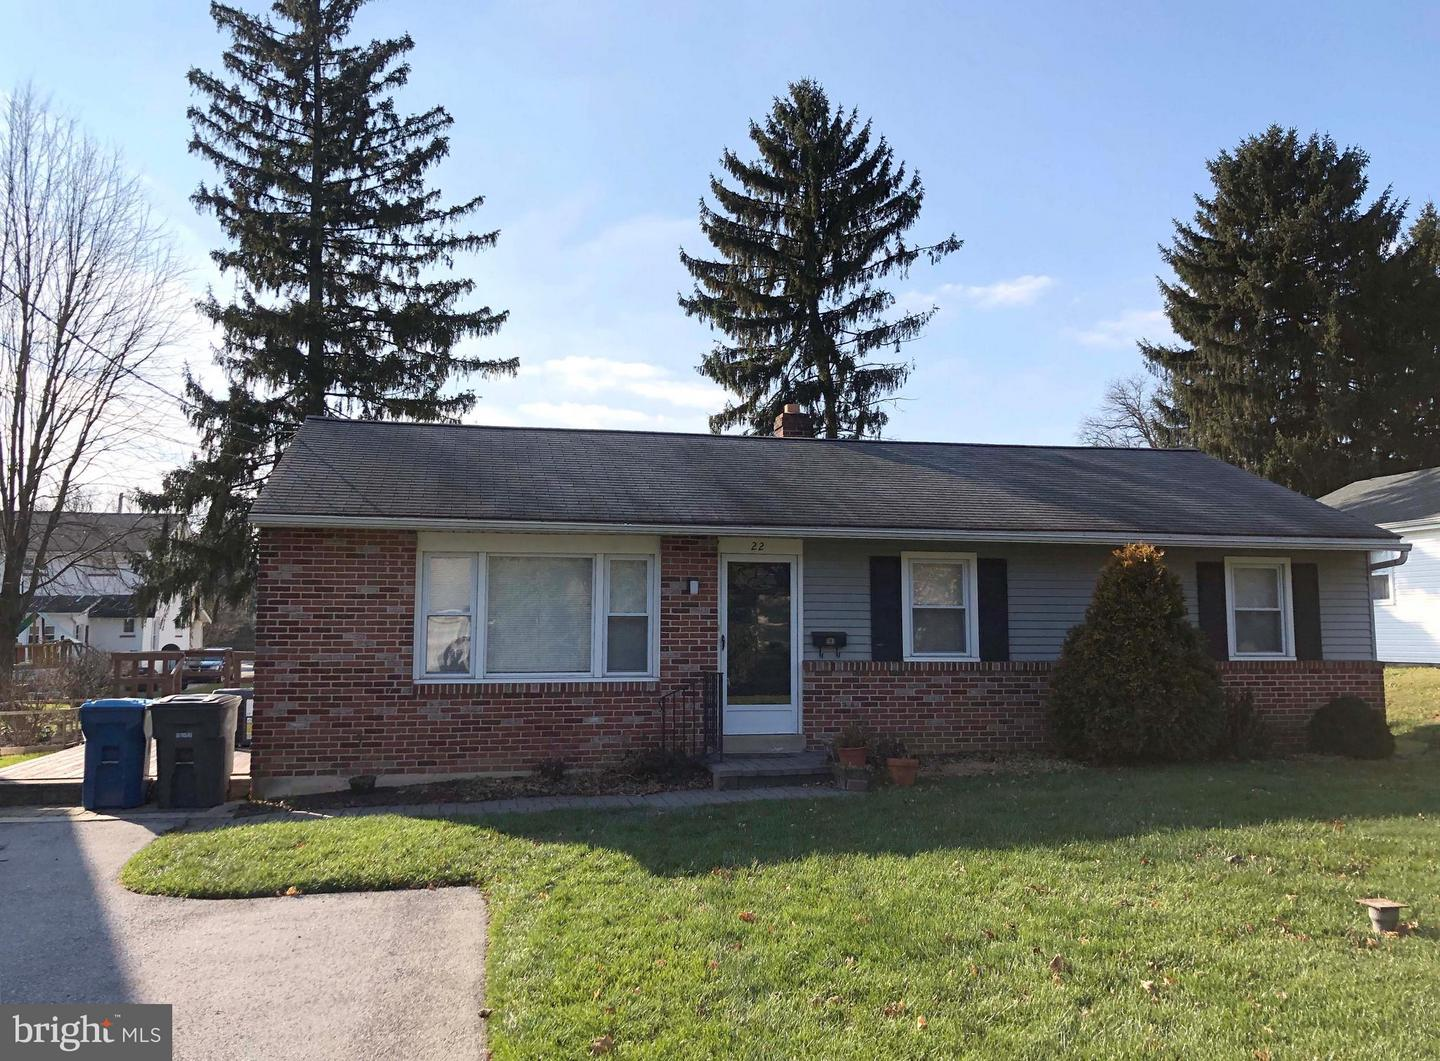 22 Turner Avenue West Chester, PA 19380